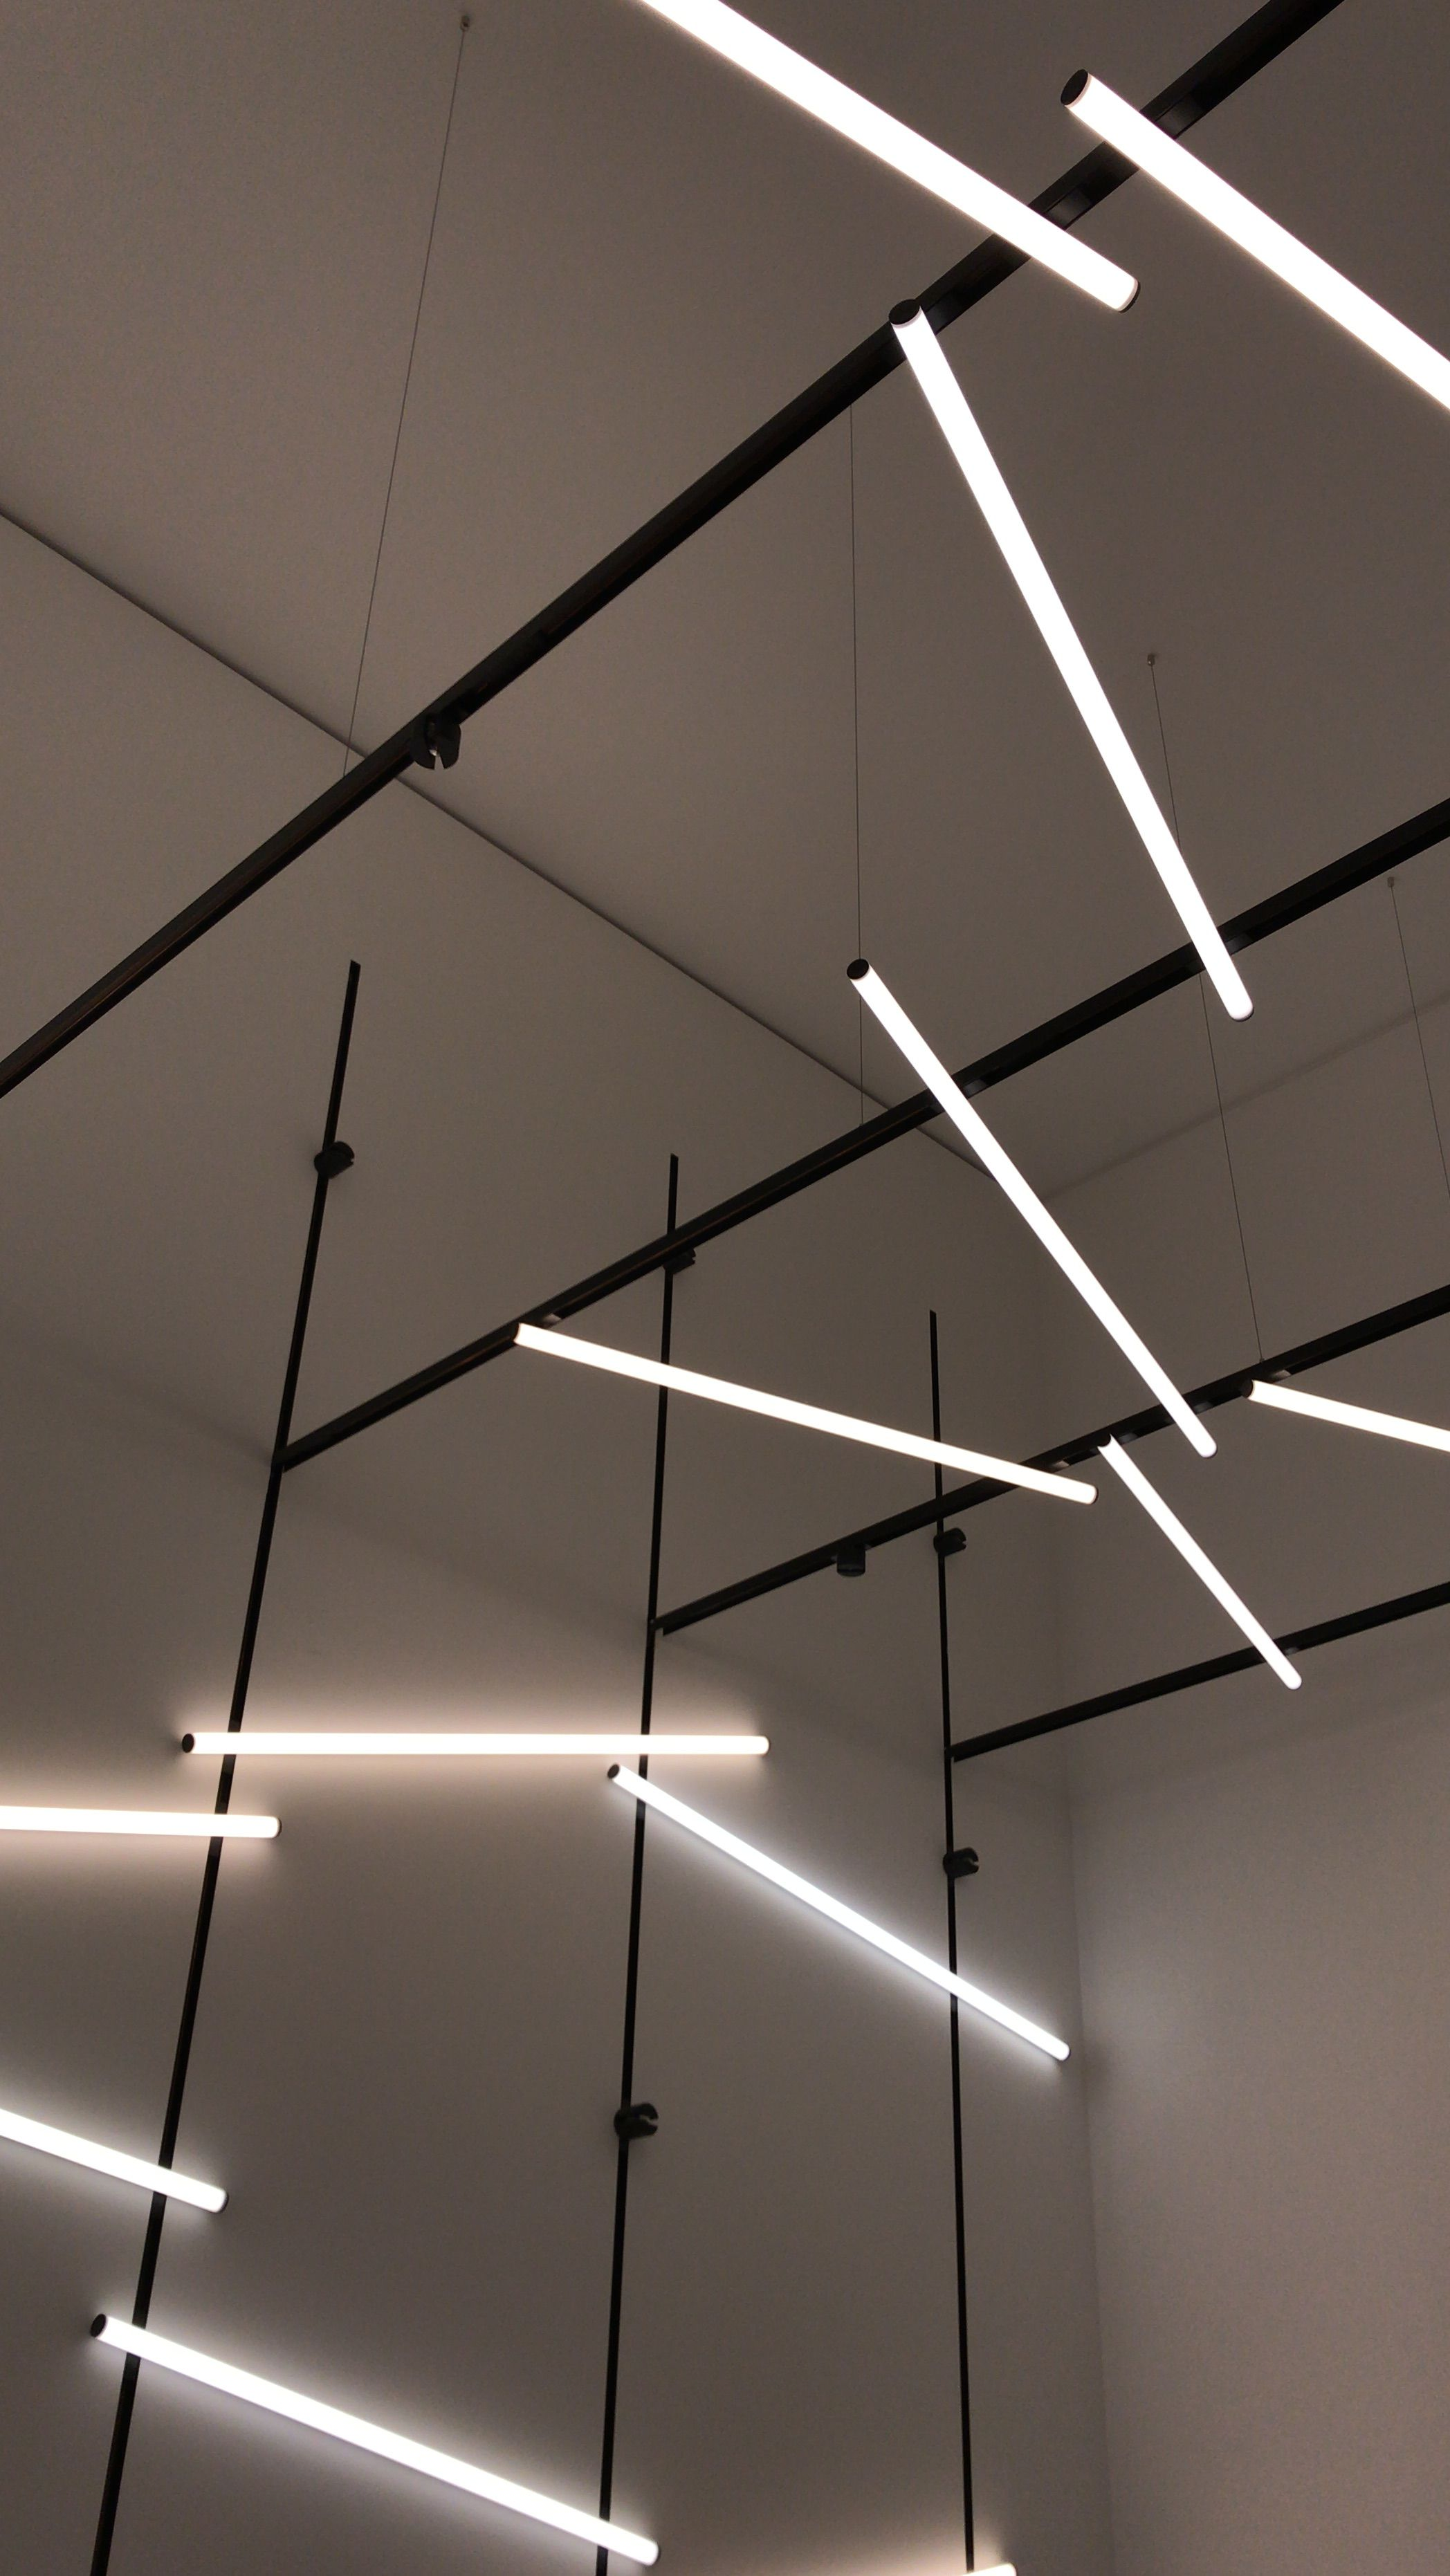 XAL Pivot, Move It 25 magnetic lighting system | XAL Products ...